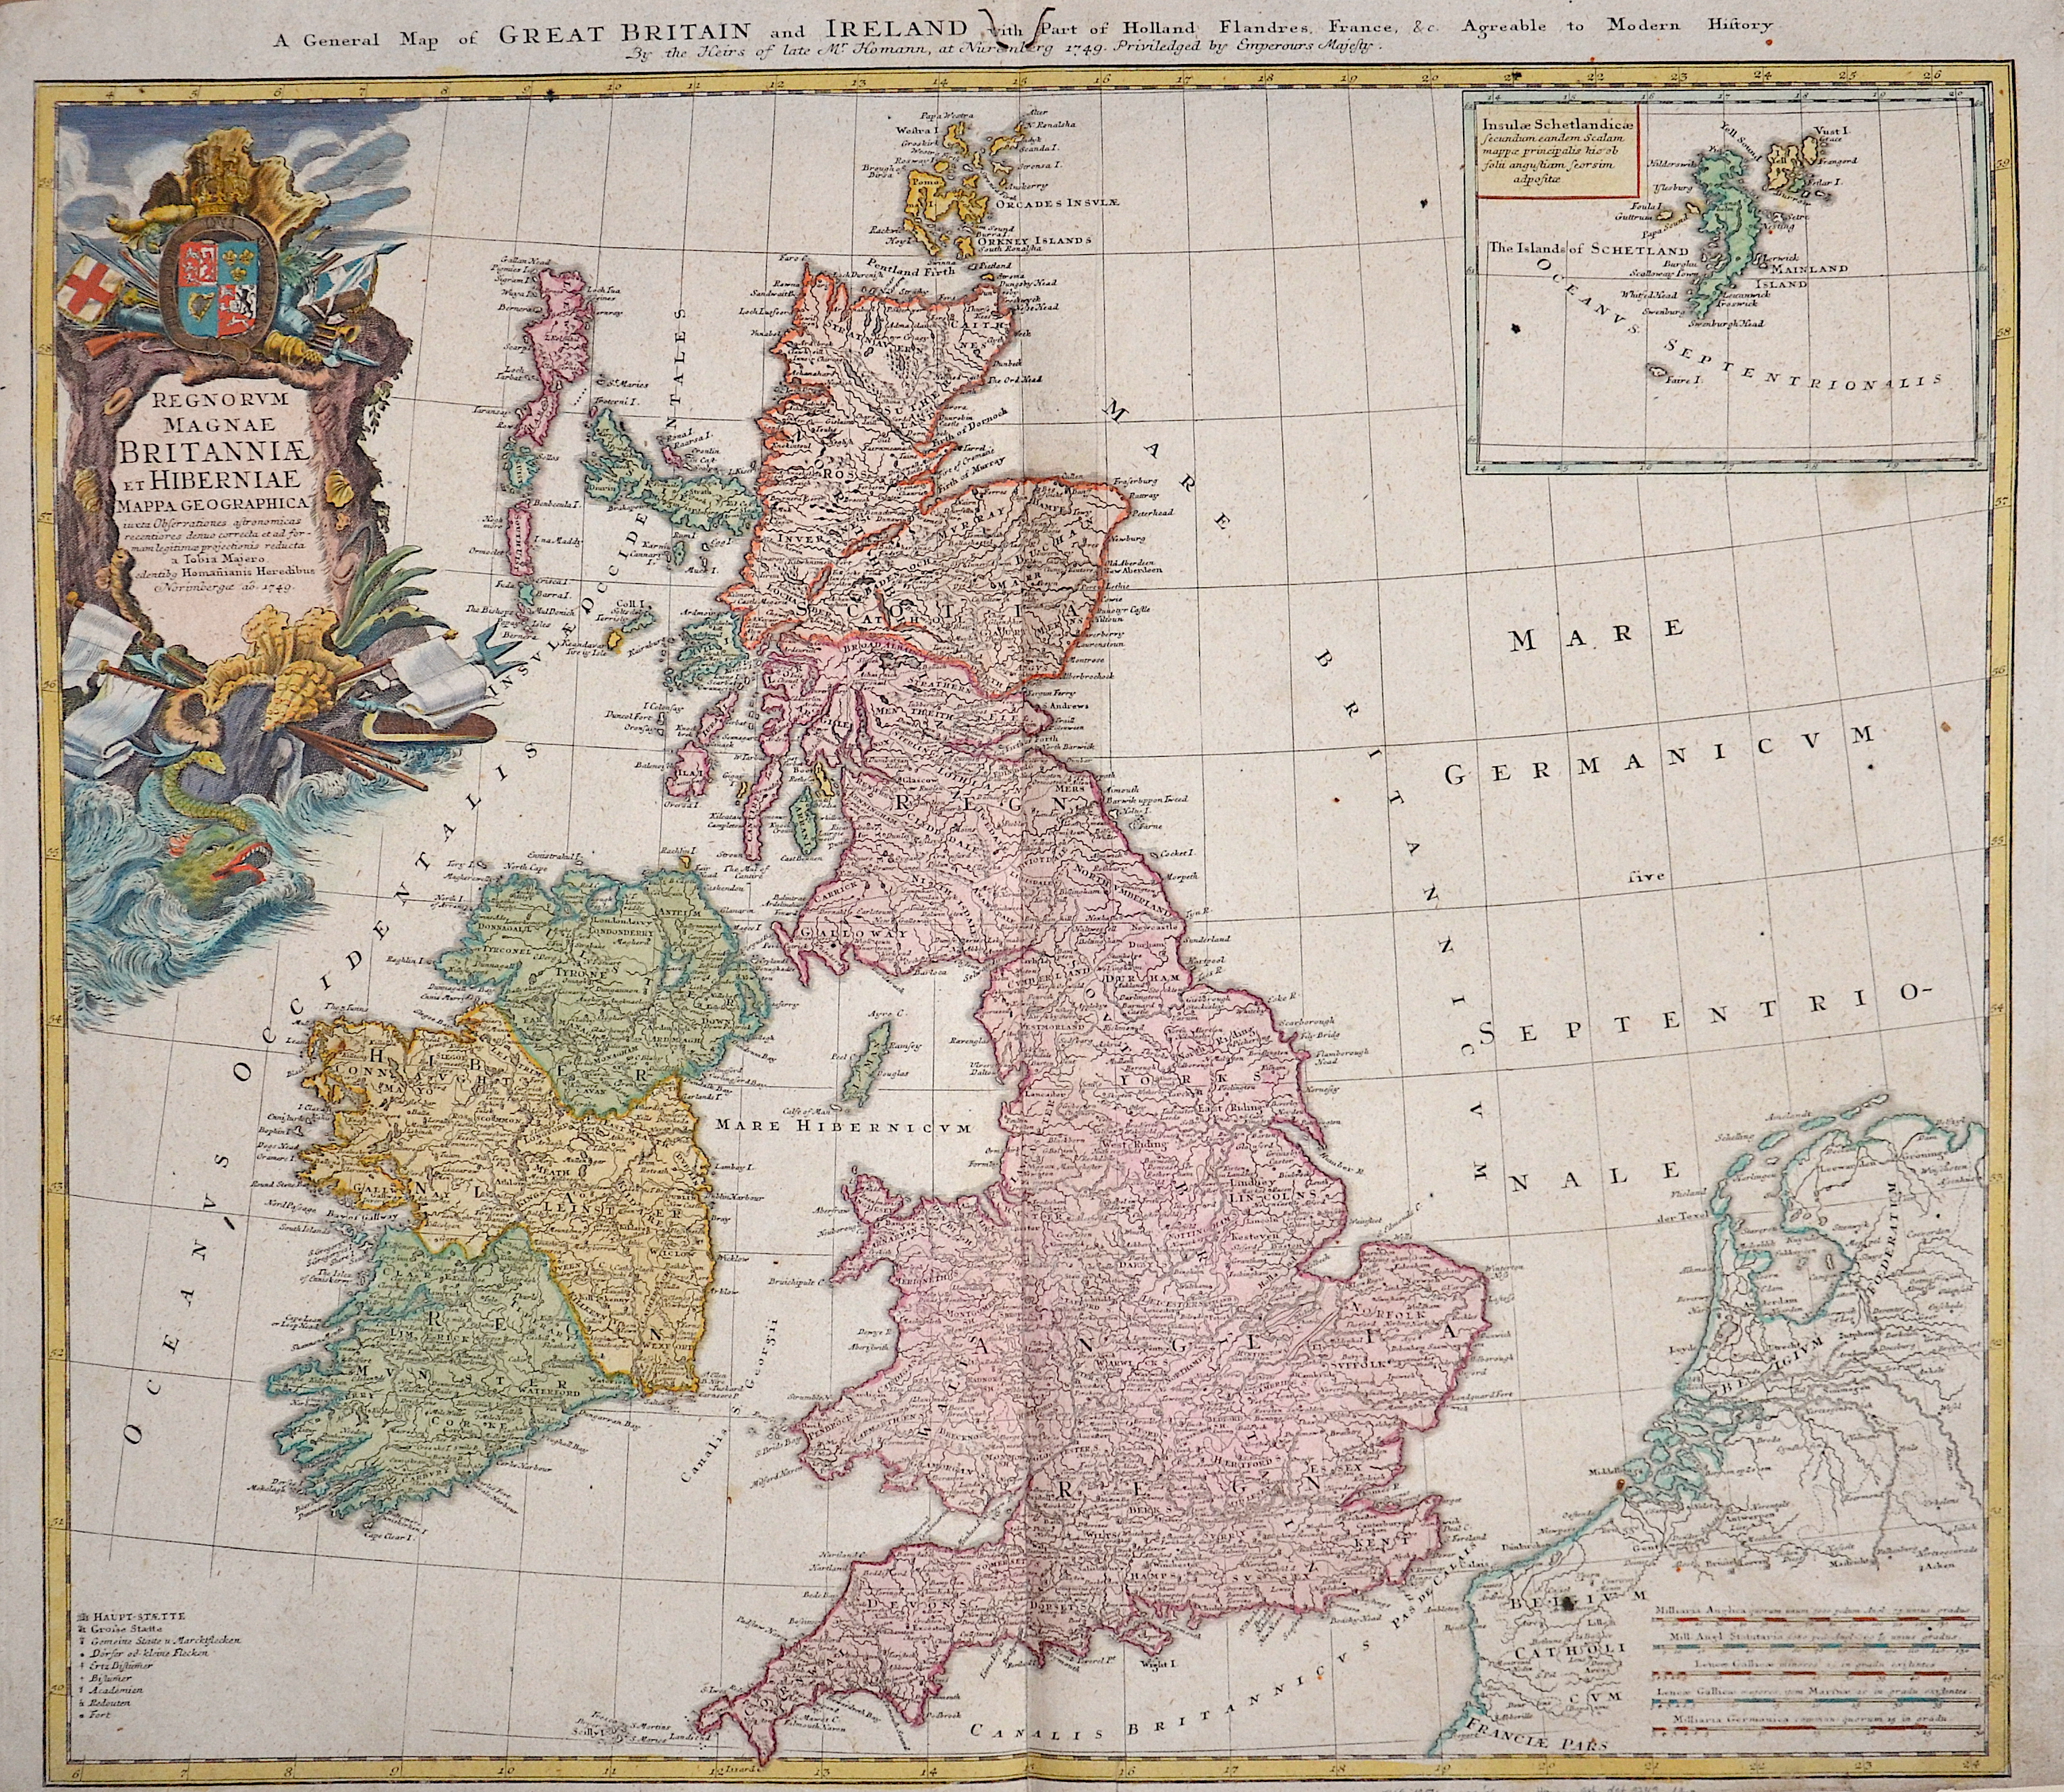 Homann Erben  A general map of Great Britain and Ireland with part of Holland Flandres, France……